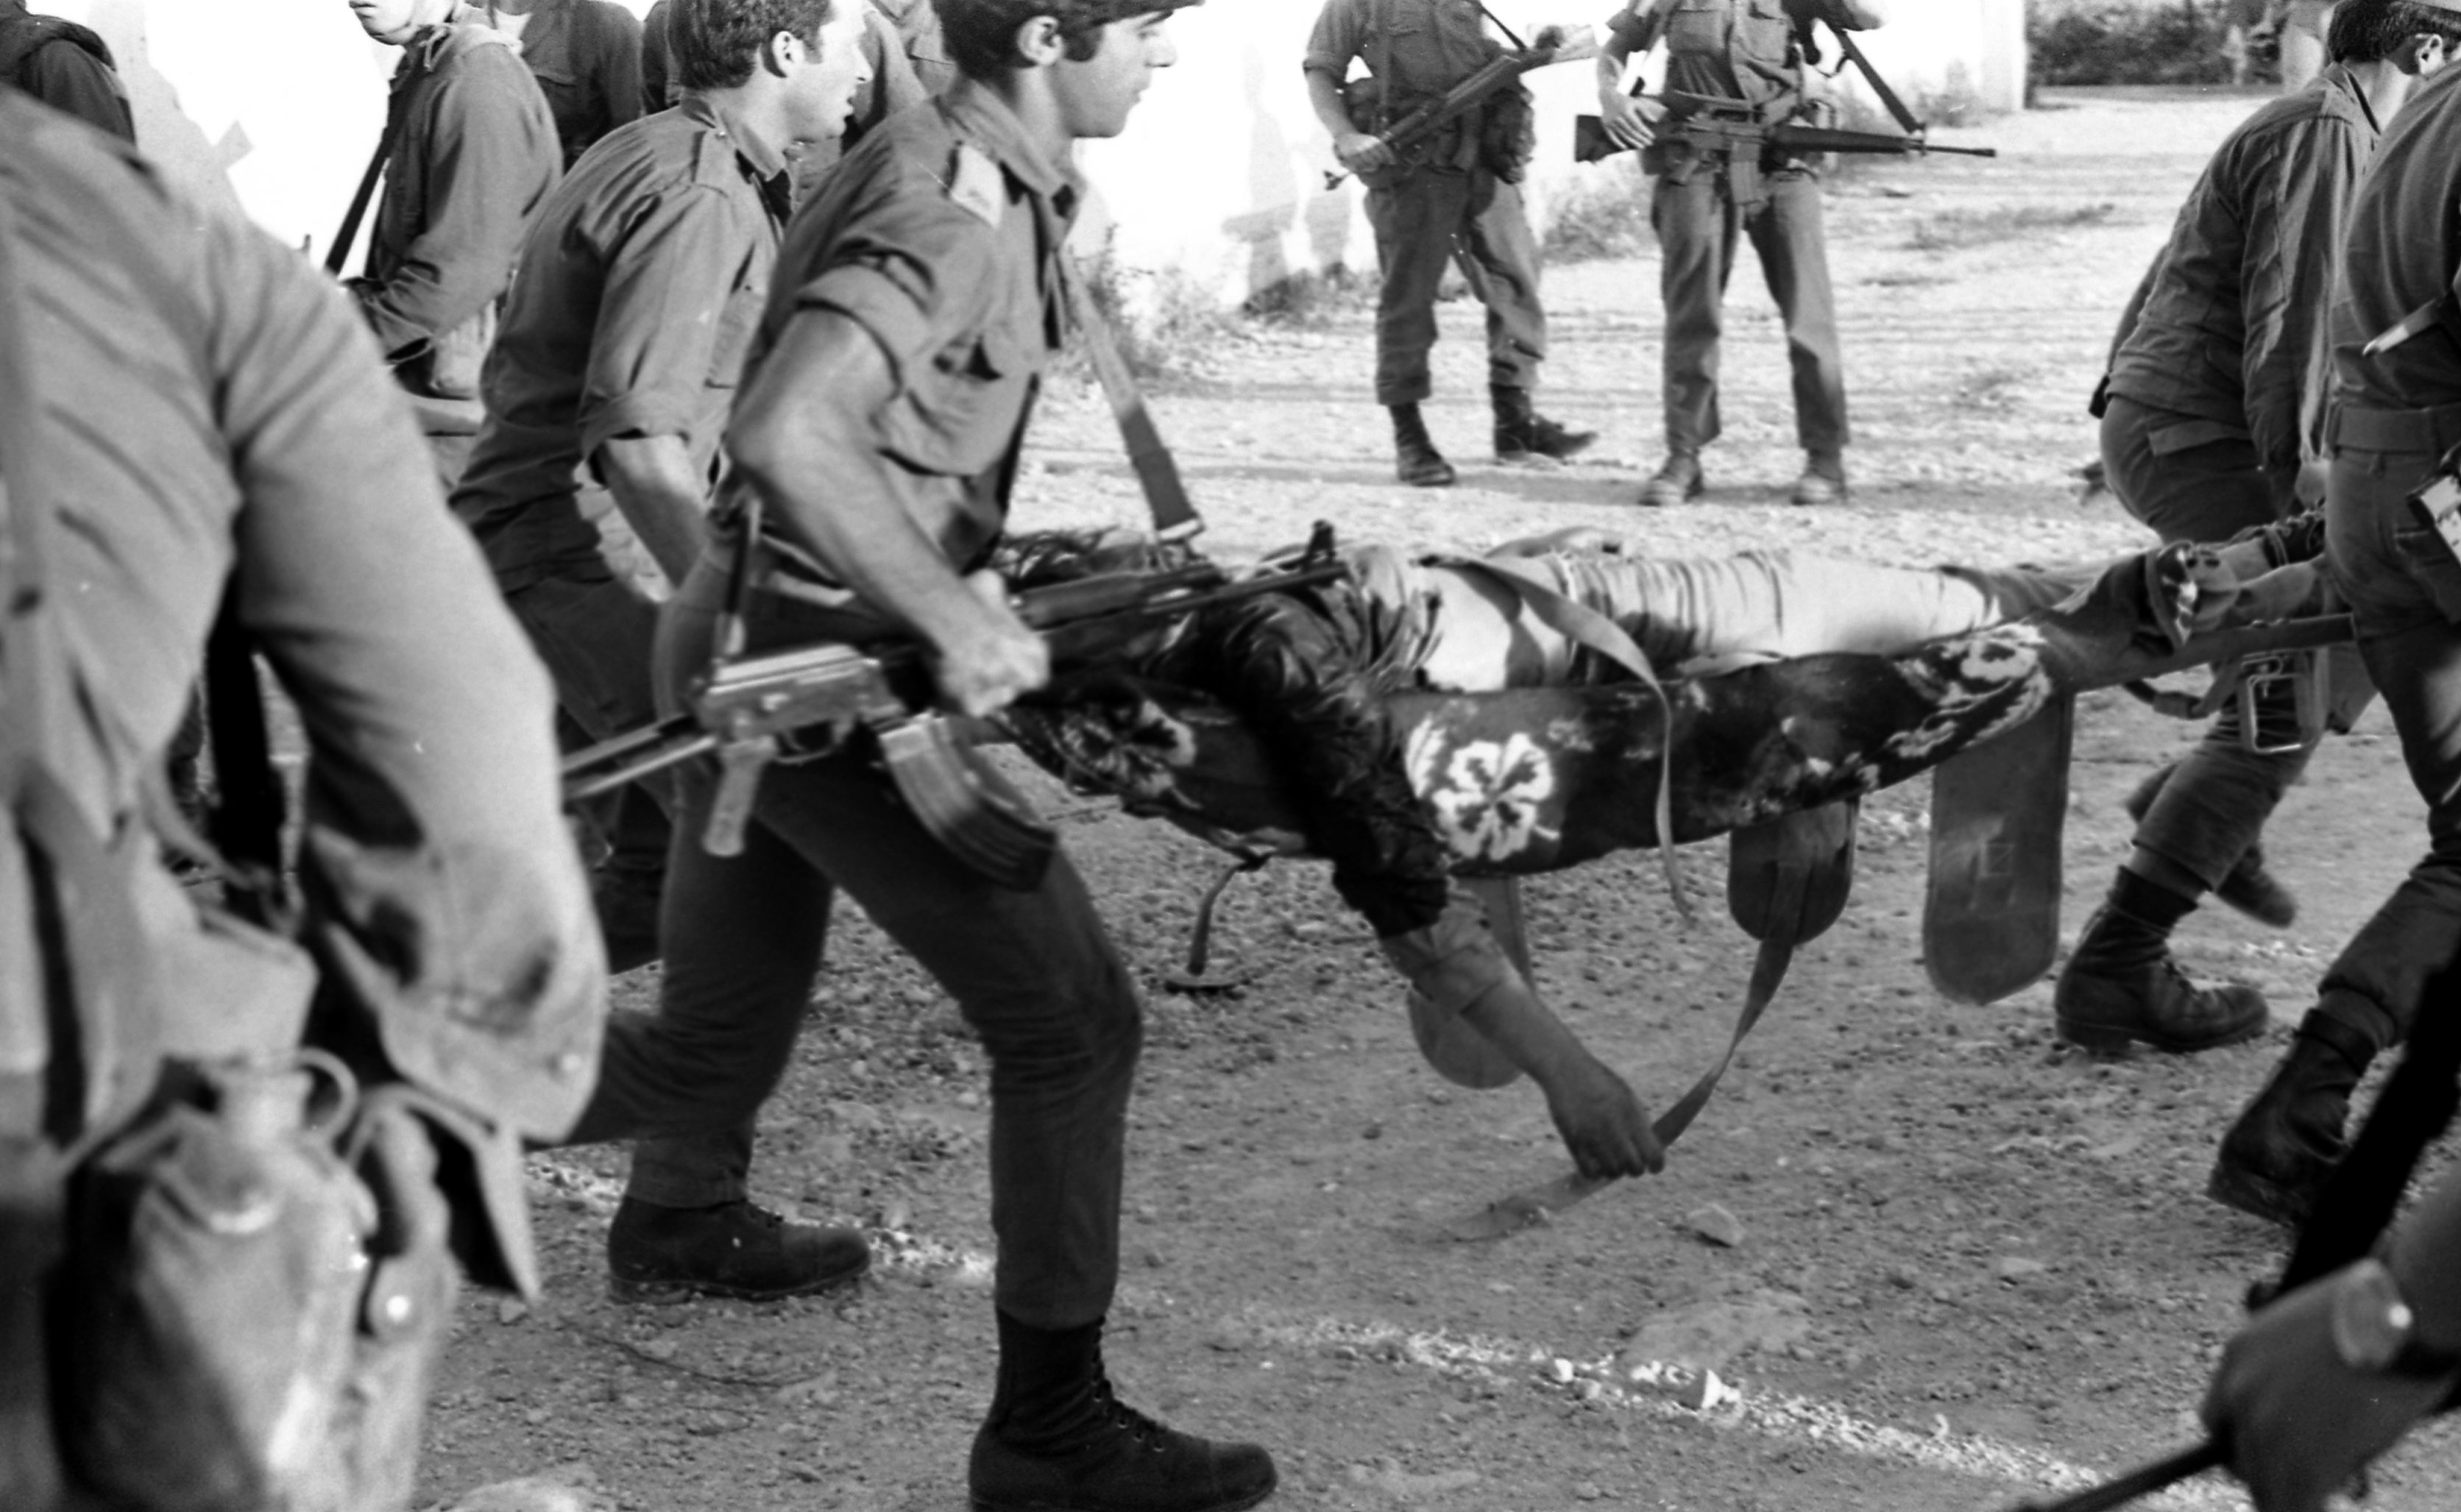 An Arab terrorist group attacked a school at Maalot killing several children and wounded thenth of them. IDF attacked the group killing the terrorists. Photo shows: Soldier rescue the wounded children from the school 1974/05/15 Copyright © IPPA 09239-004-26 Photo by IPPA Staff